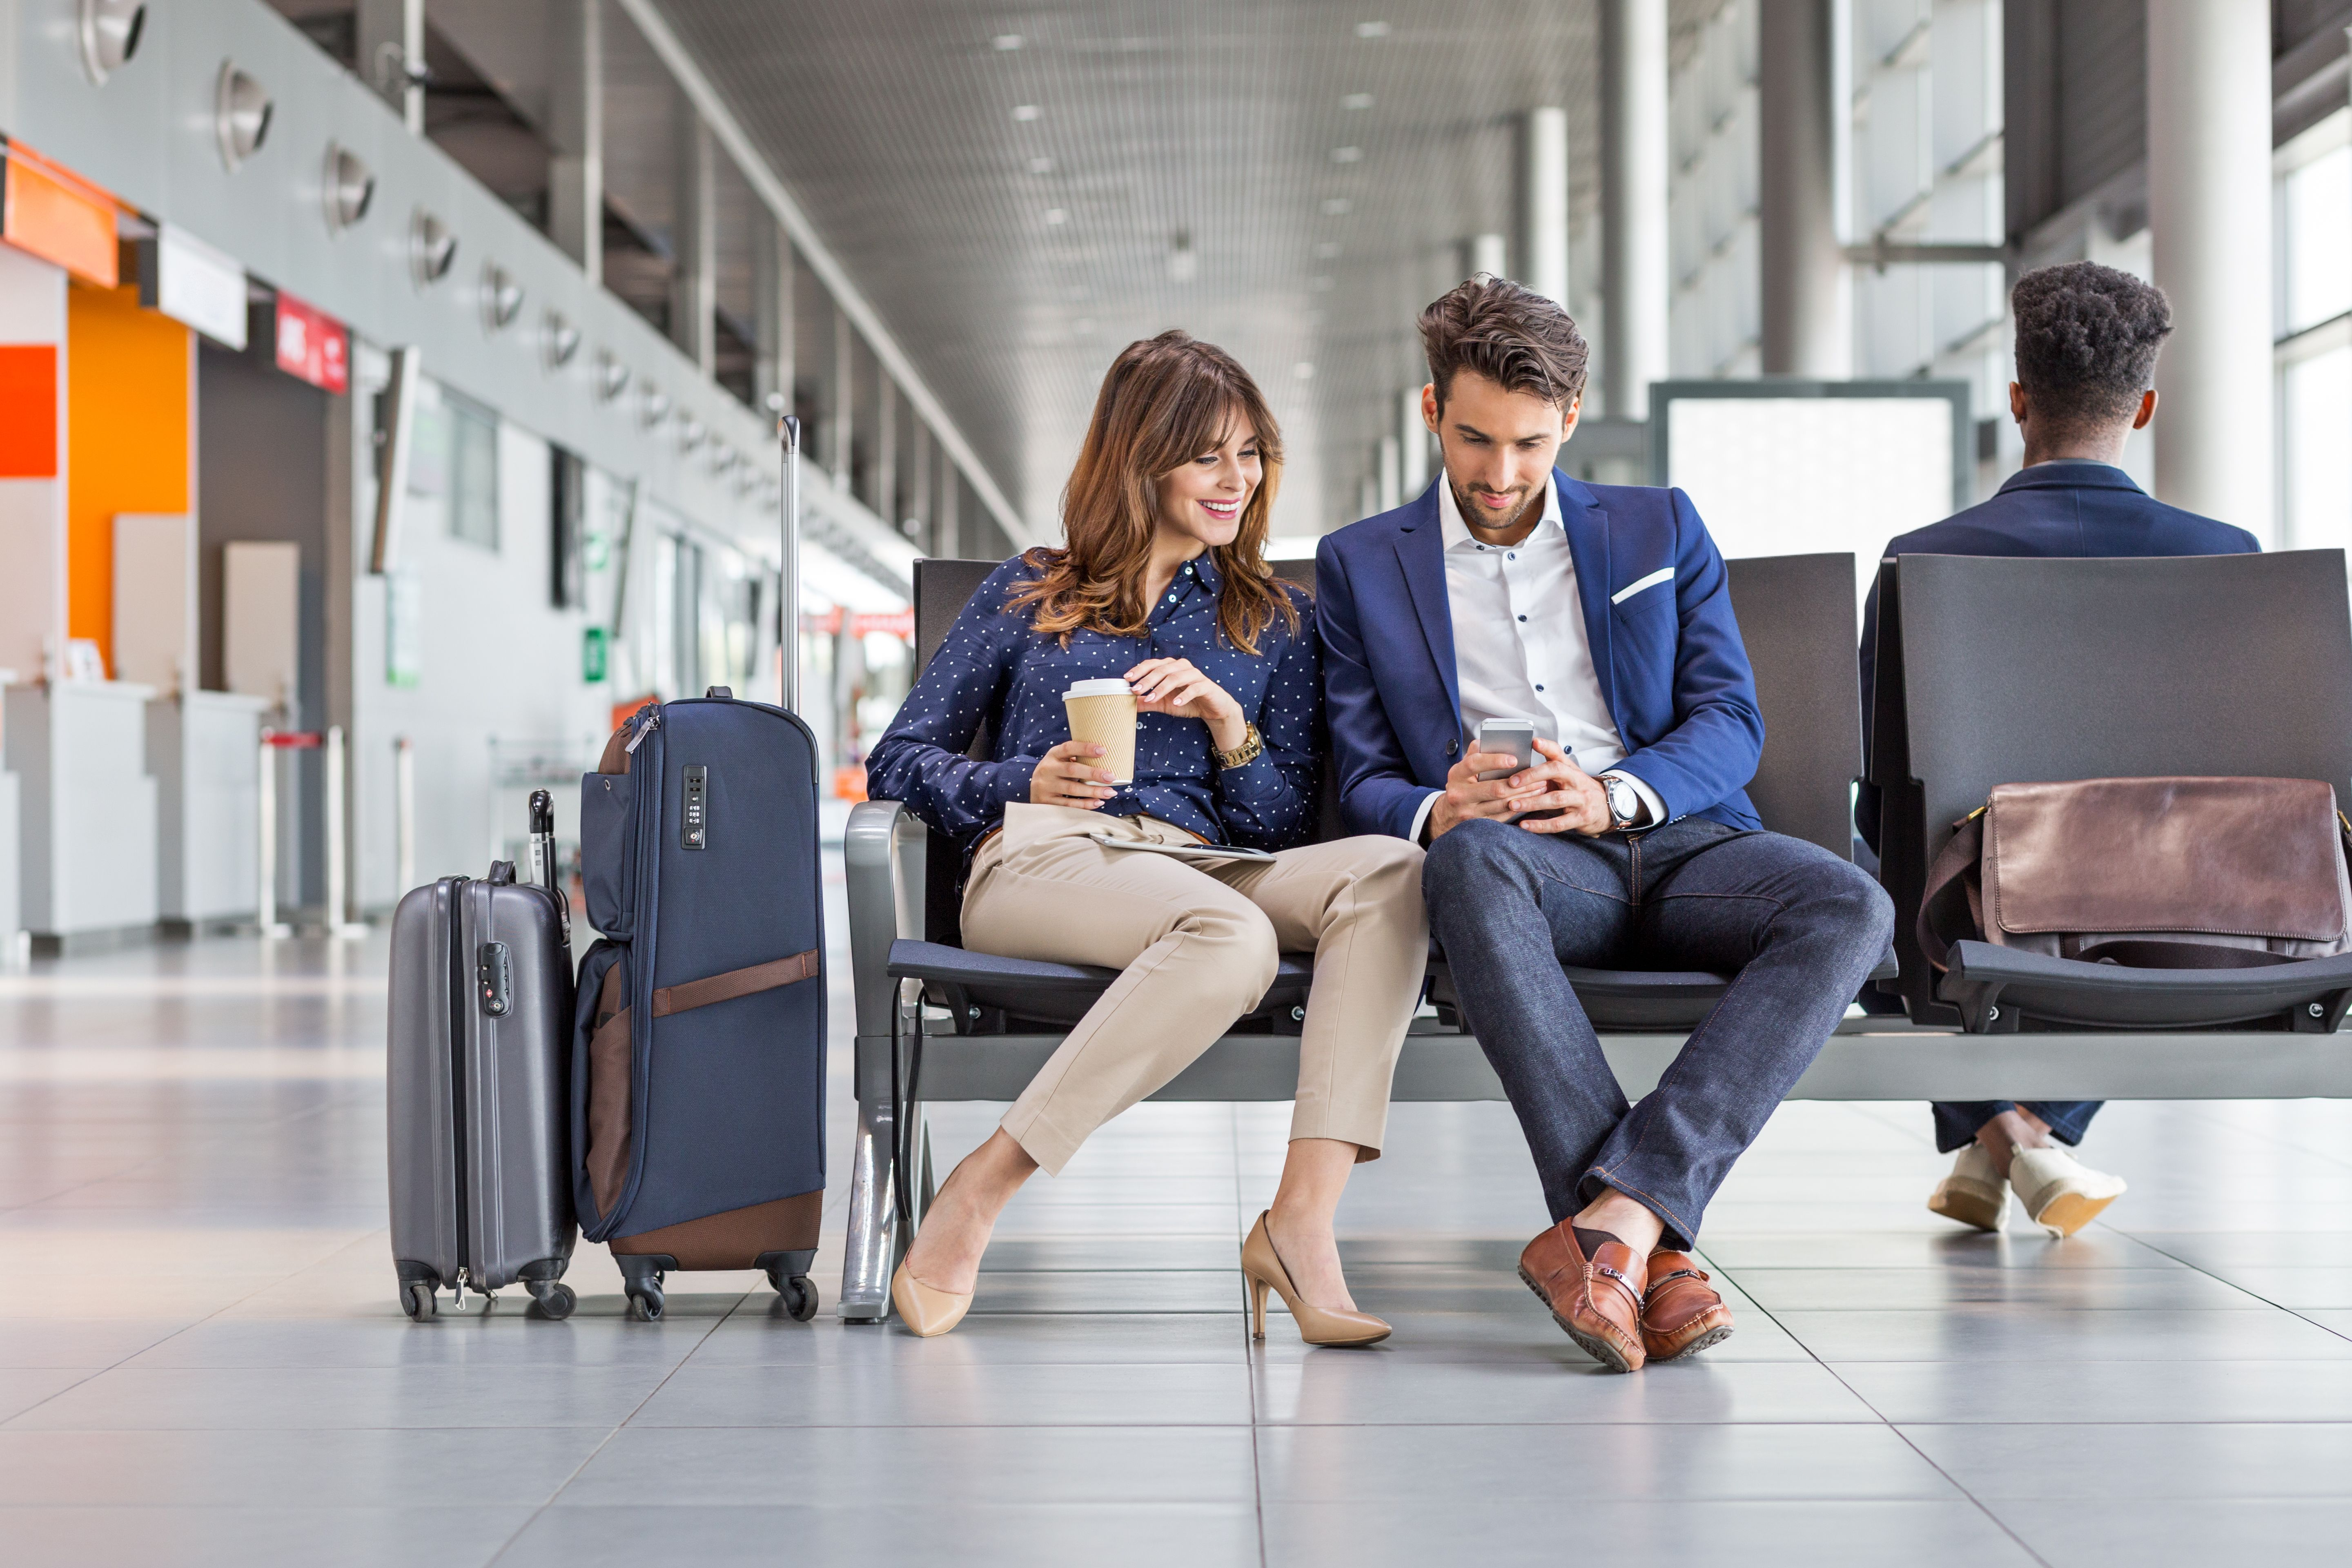 While technology has helped make travel cheaper and safer